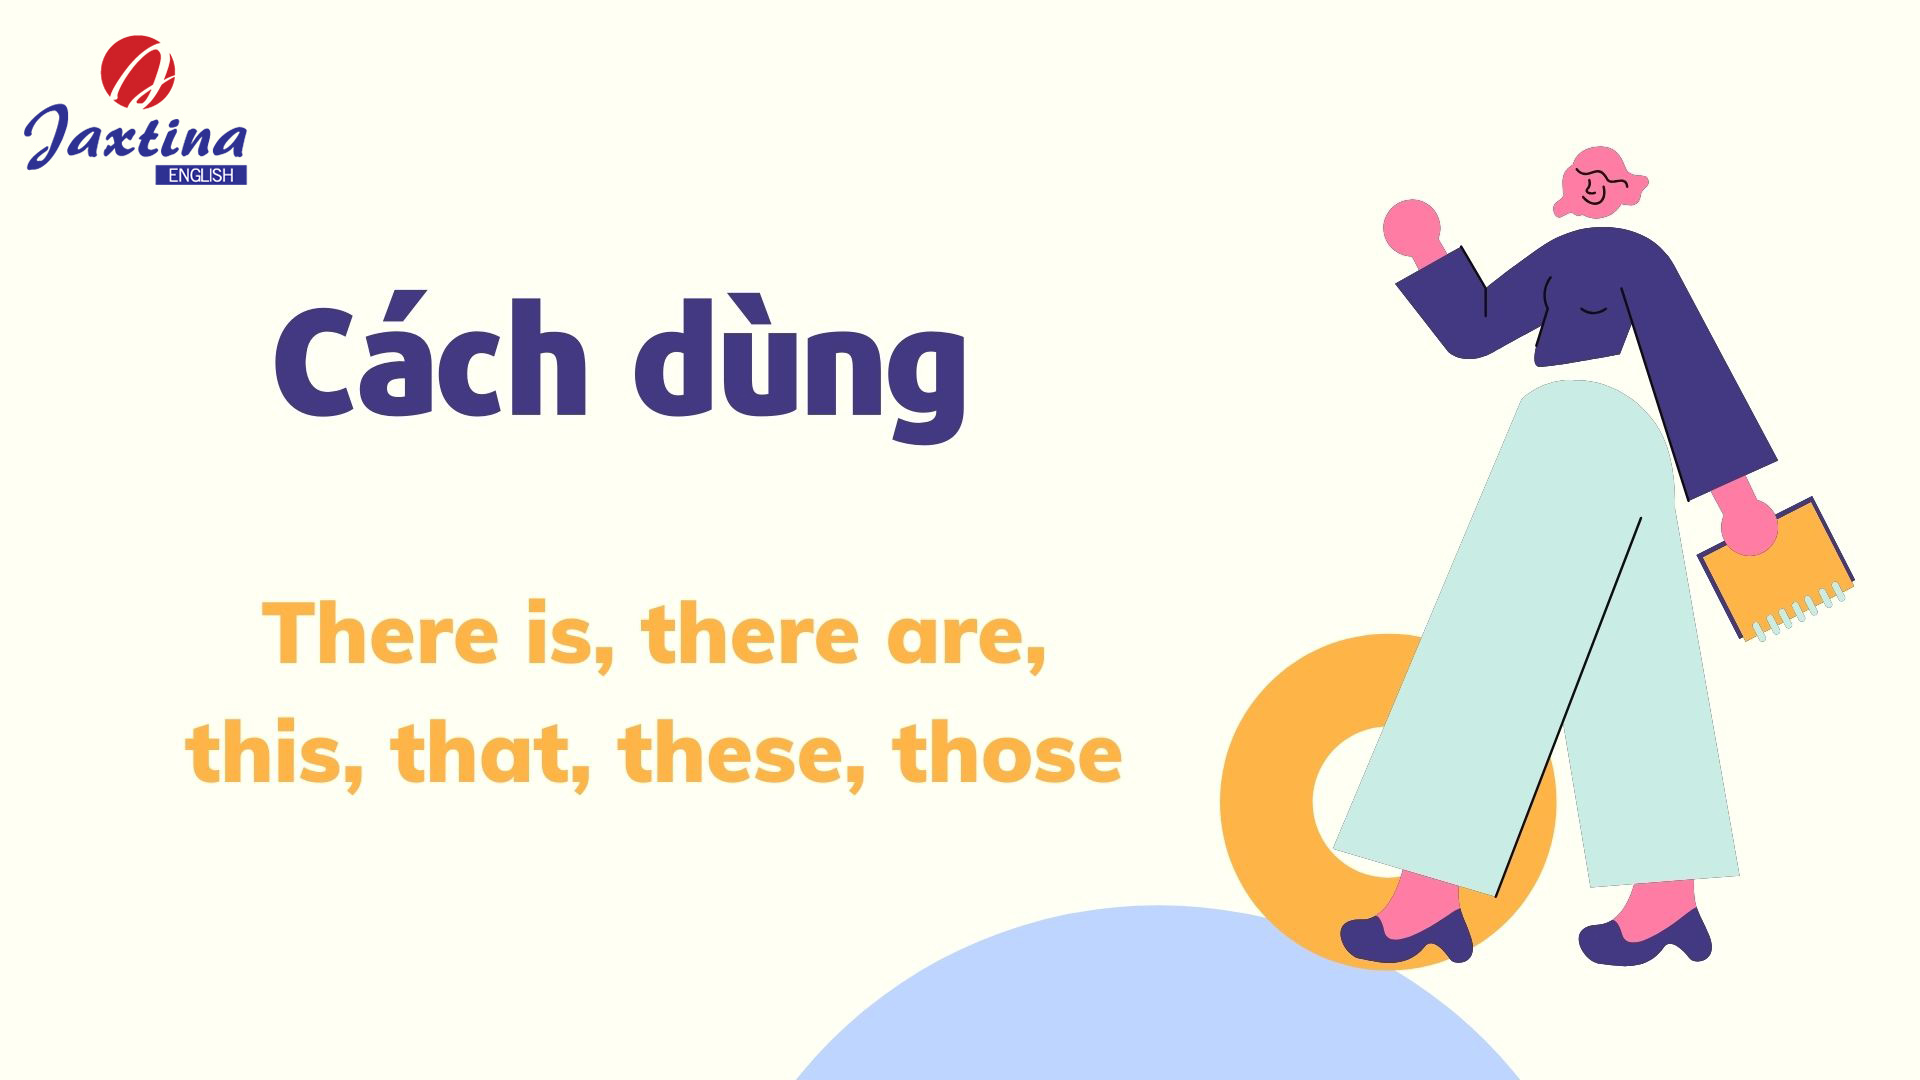 Cách dùng there is, there are, this, that, these & those trong tiếng Anh